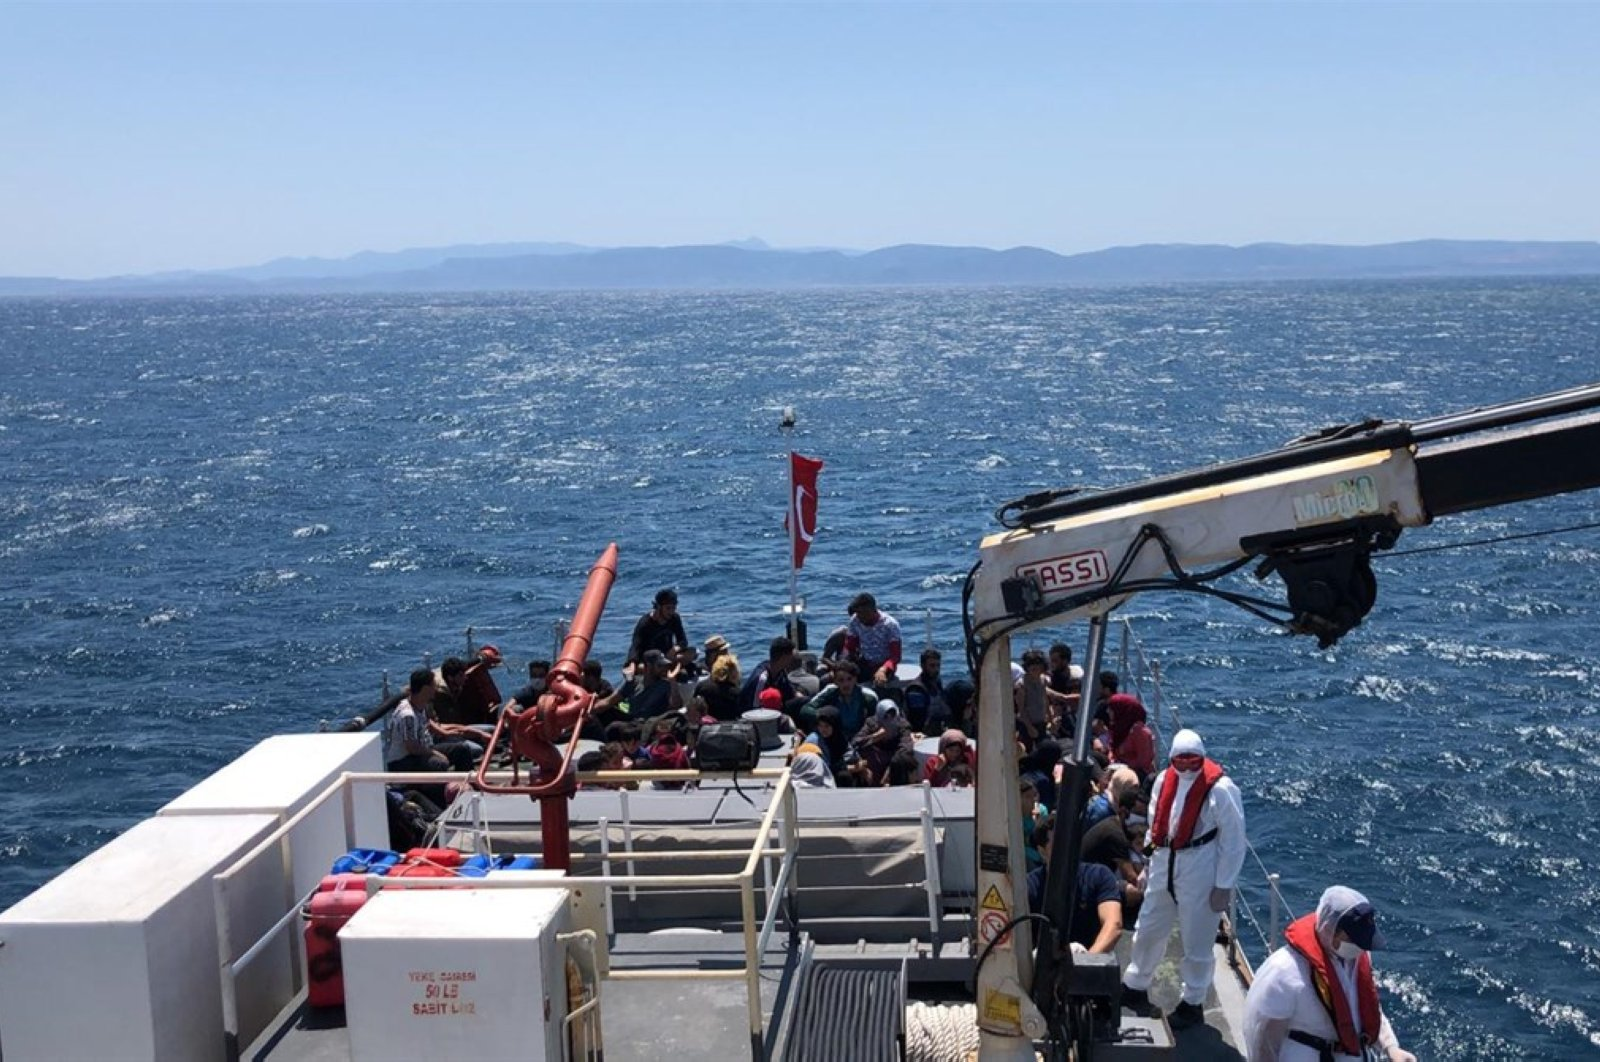 The Turkish coast guard rescues 57 migrants, who set off for the Greek island of Lesbos, in the Aegean Sea off the coast of Ayvalık in the Balıkesir province, July 9, 2020. (AA Photo)